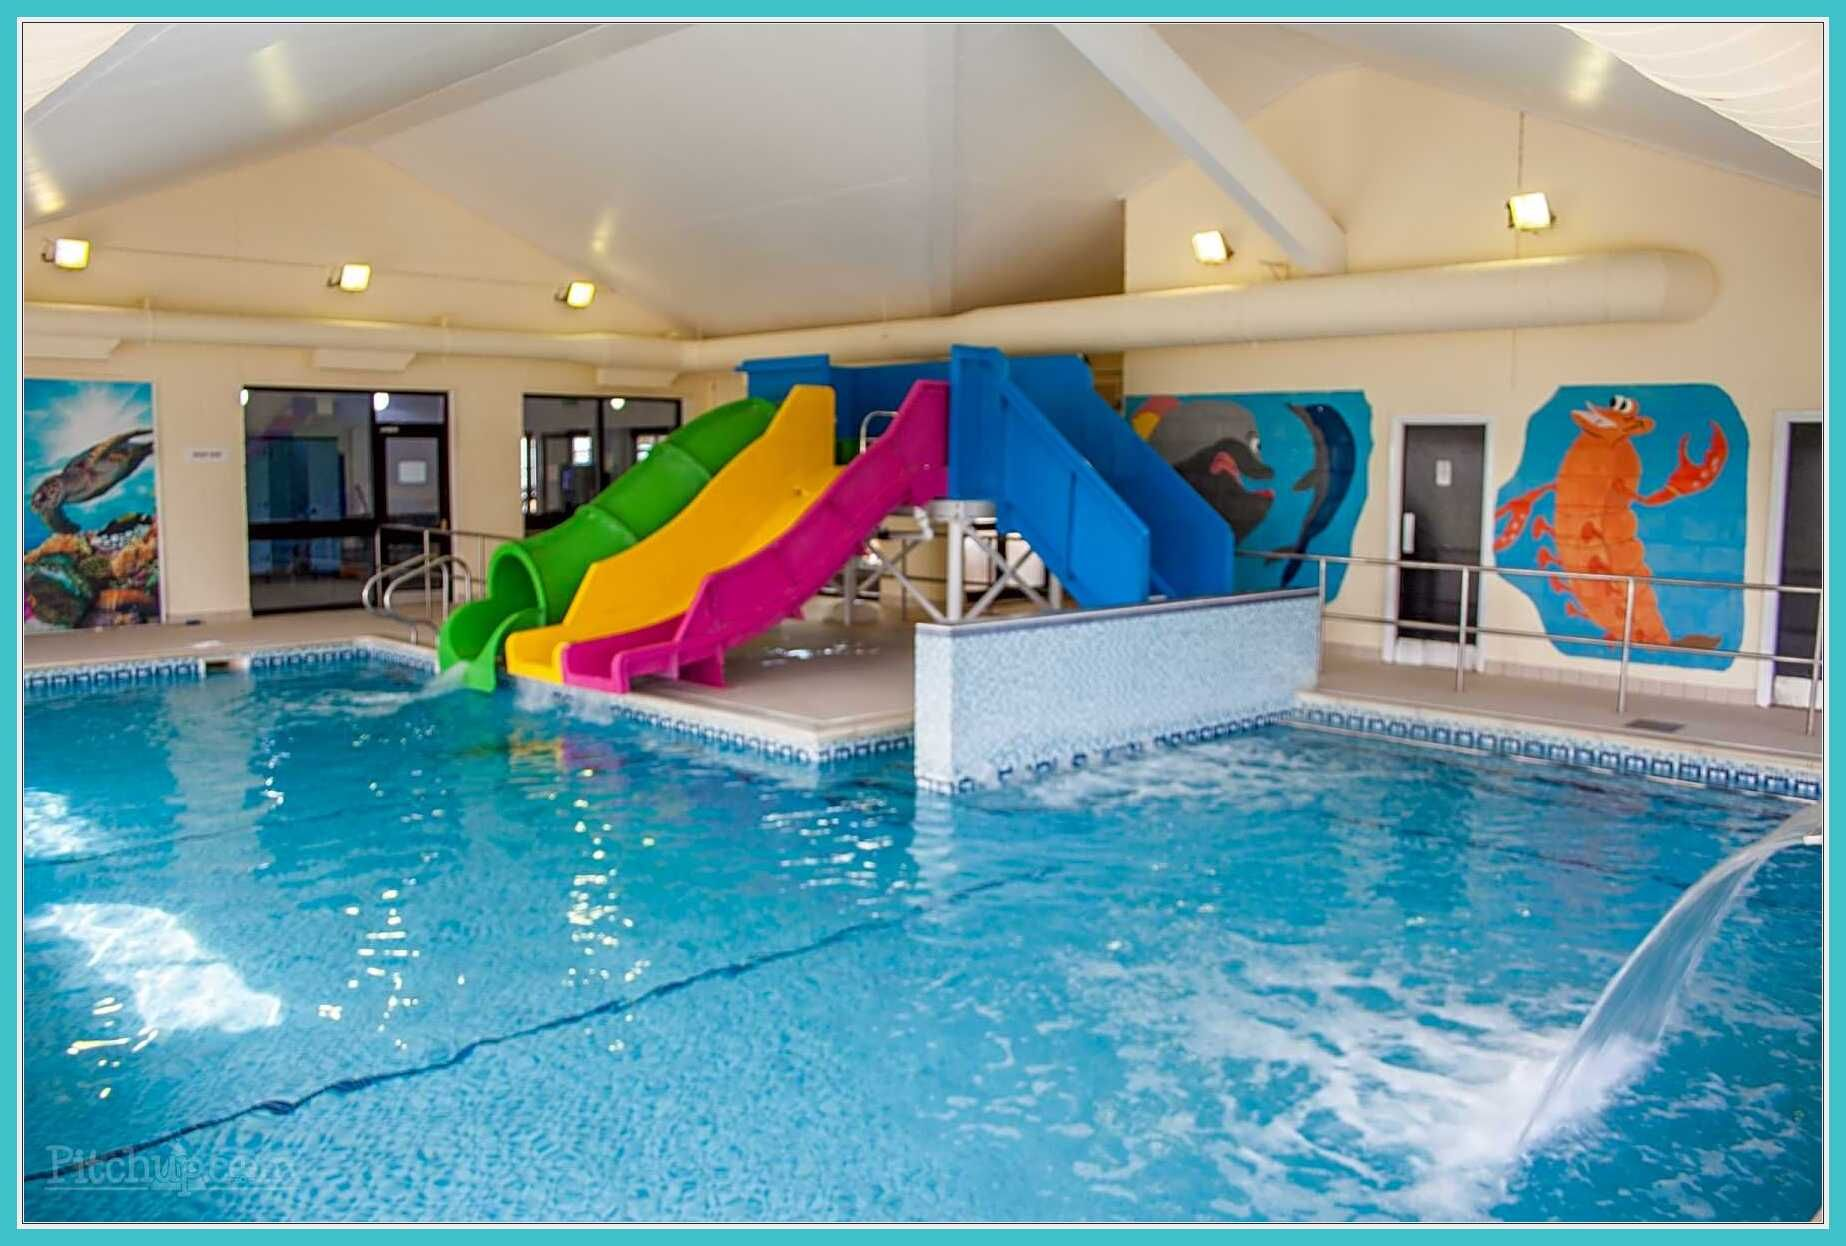 38 Reference Of Indoor Baby Swimming Pool Near Me Indoor Swimming Pools Swimming Pools Indoor Pool Design